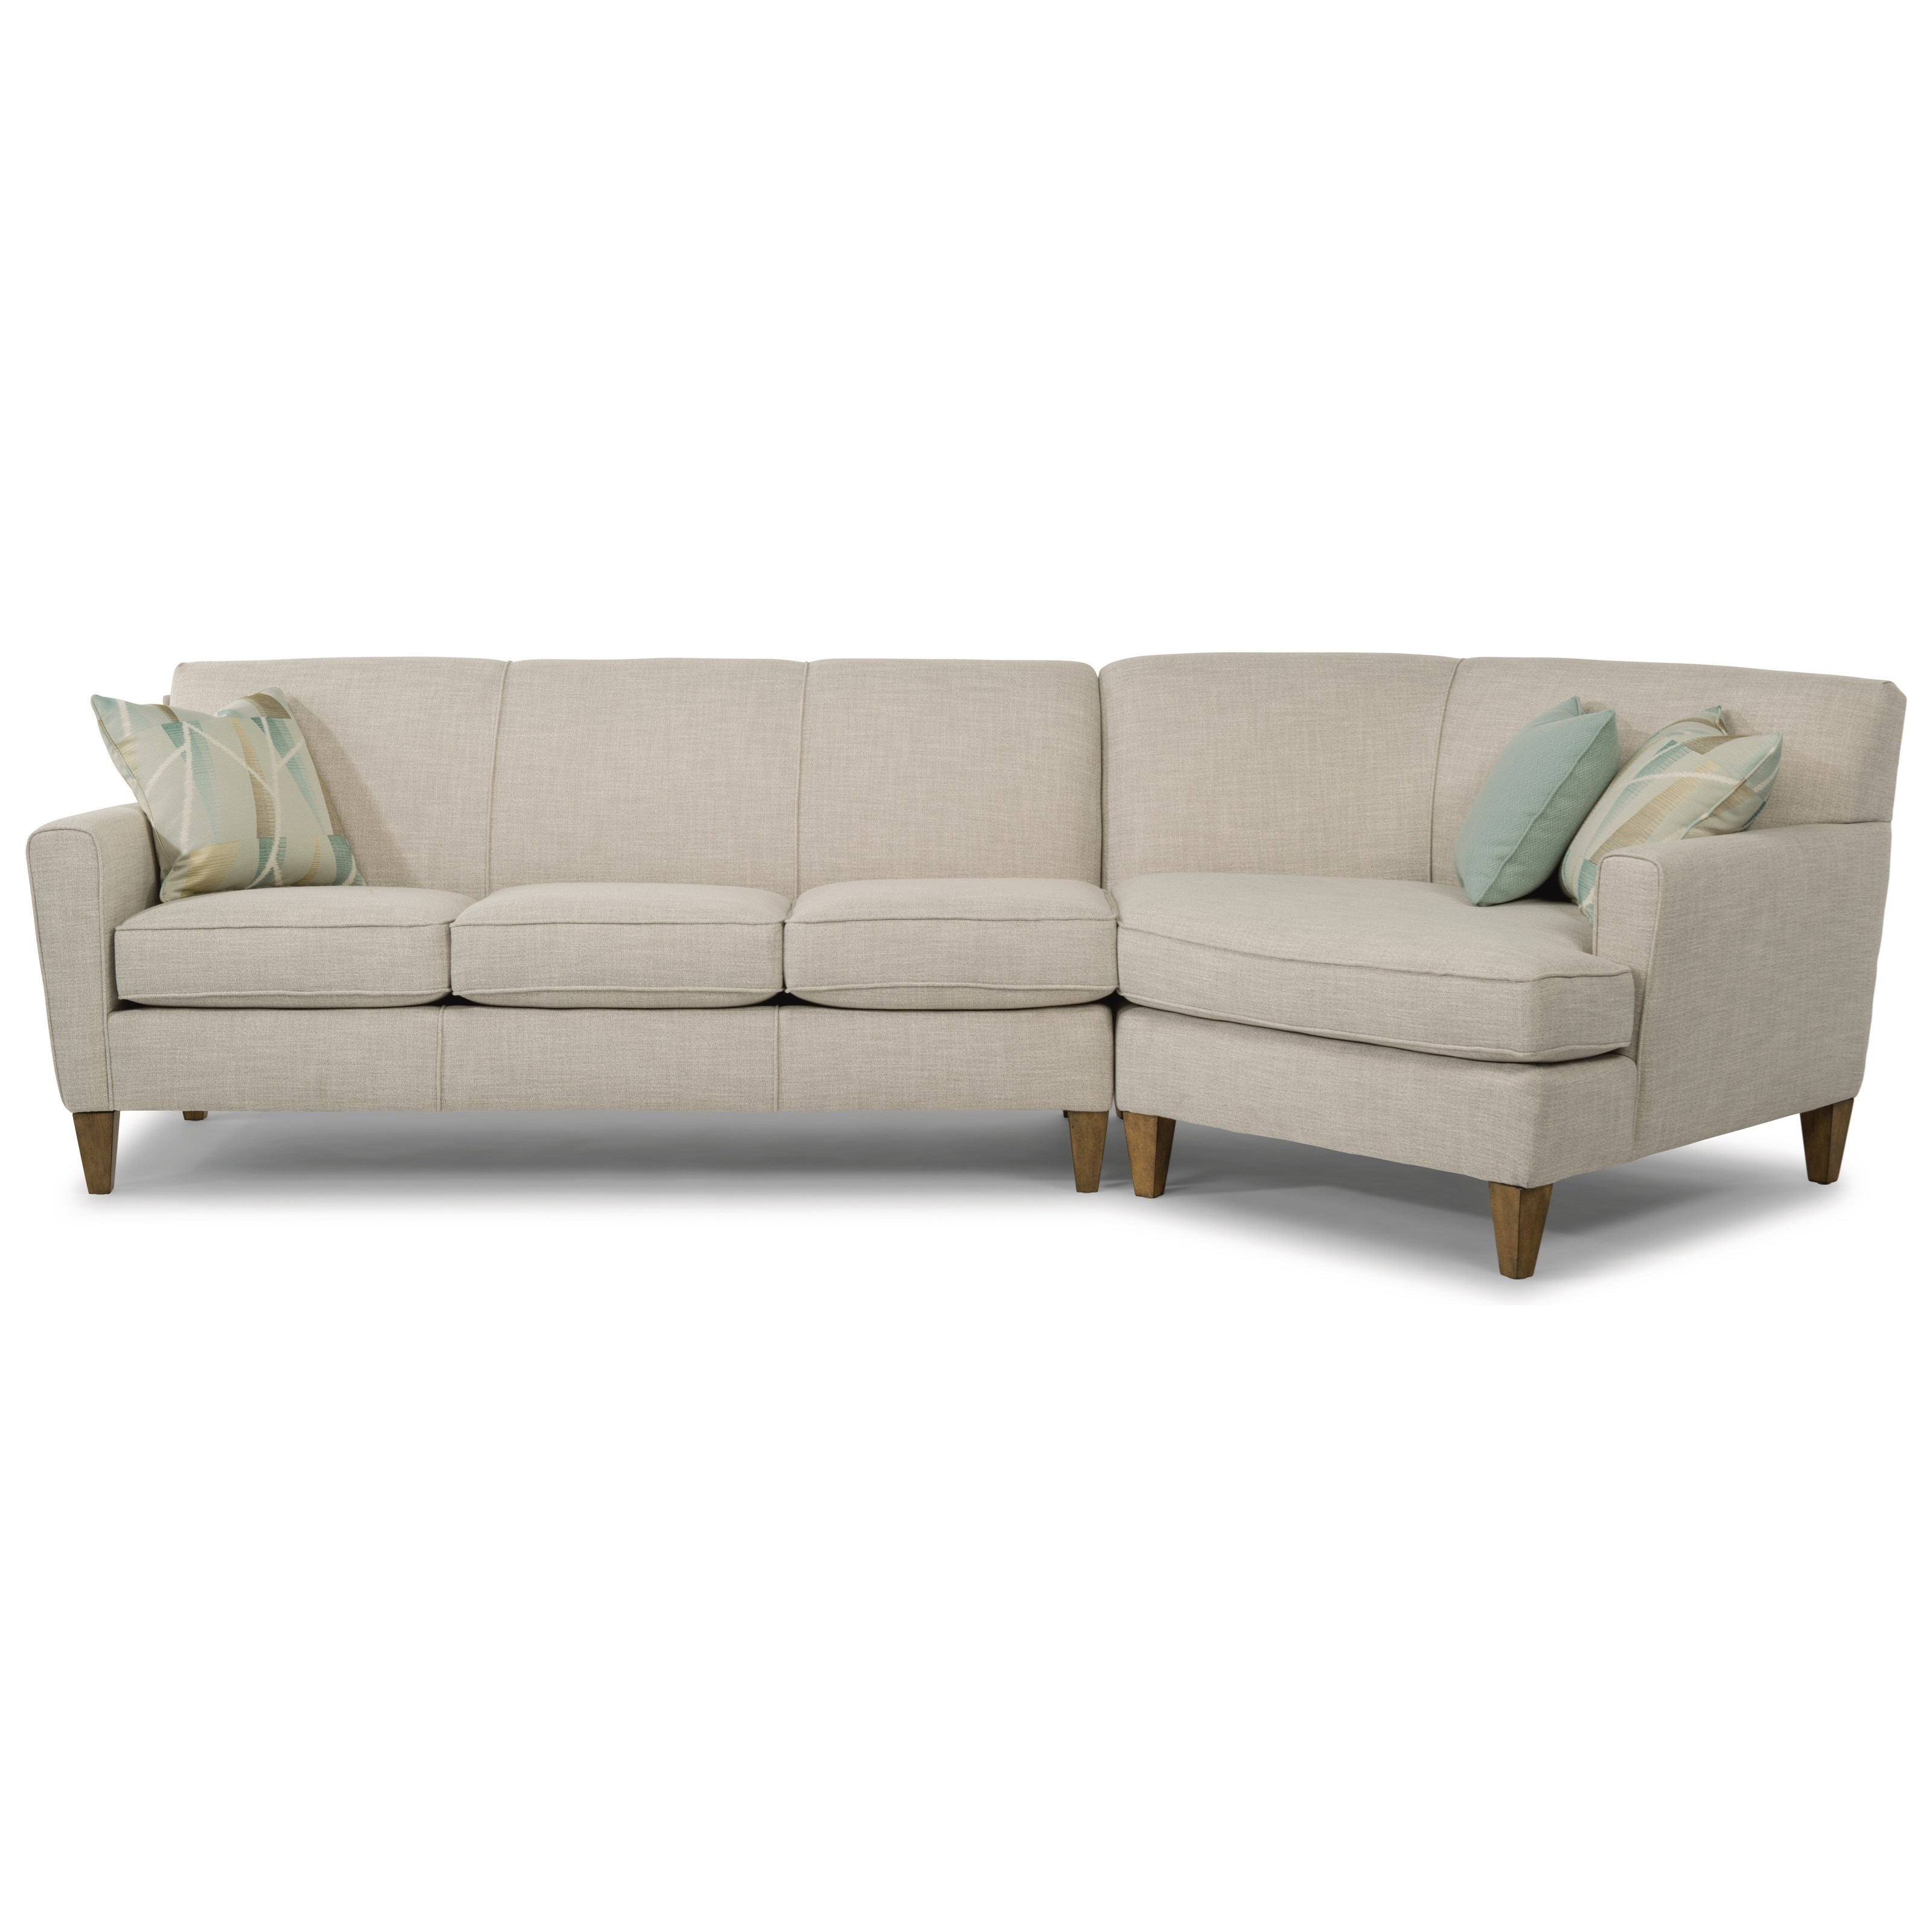 Digby 2-Piece Sectional with RAF Angled Chaise by Flexsteel at Mueller Furniture